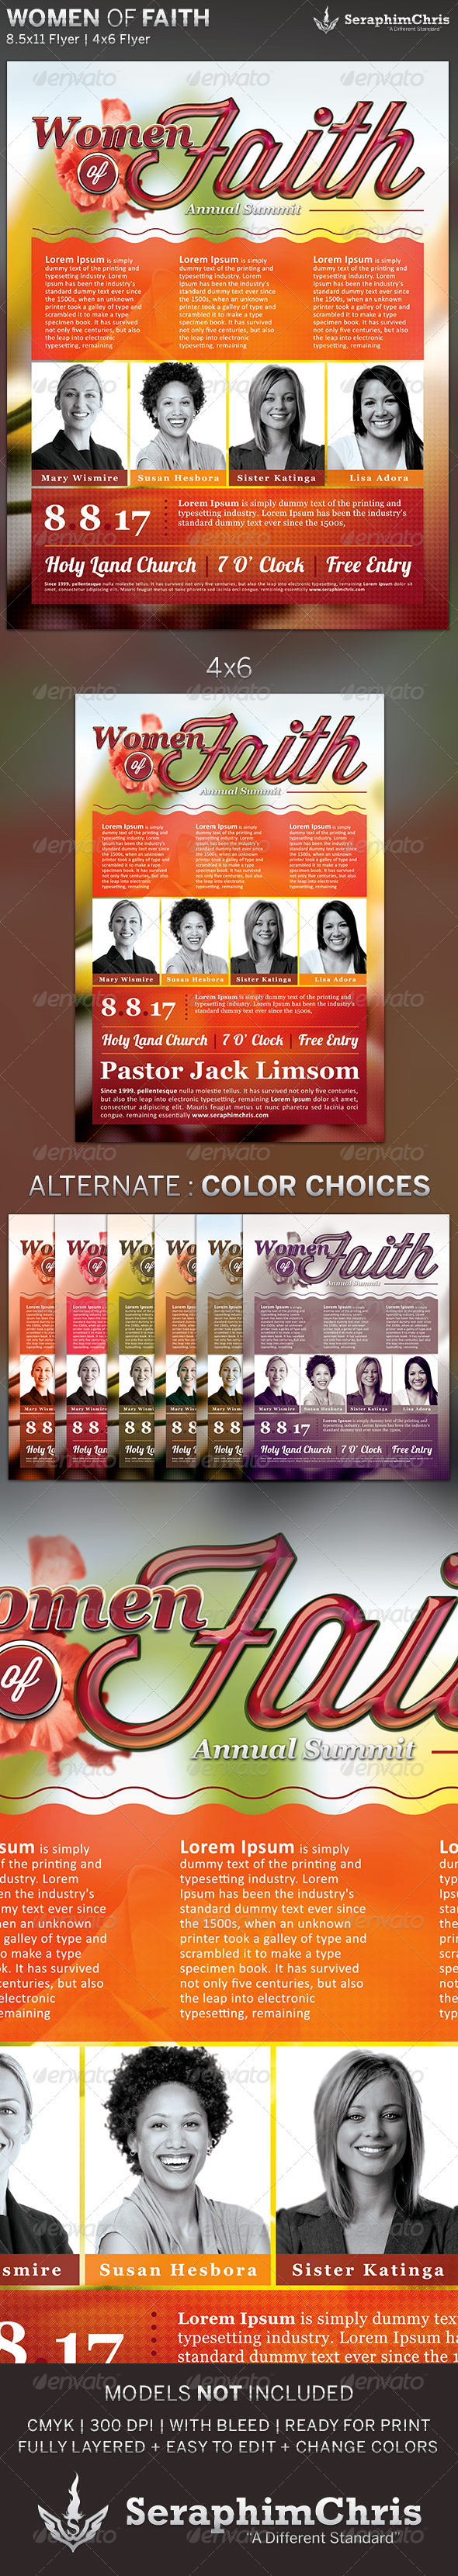 GraphicRiver Women of Faith Church Flyer Template 5109990